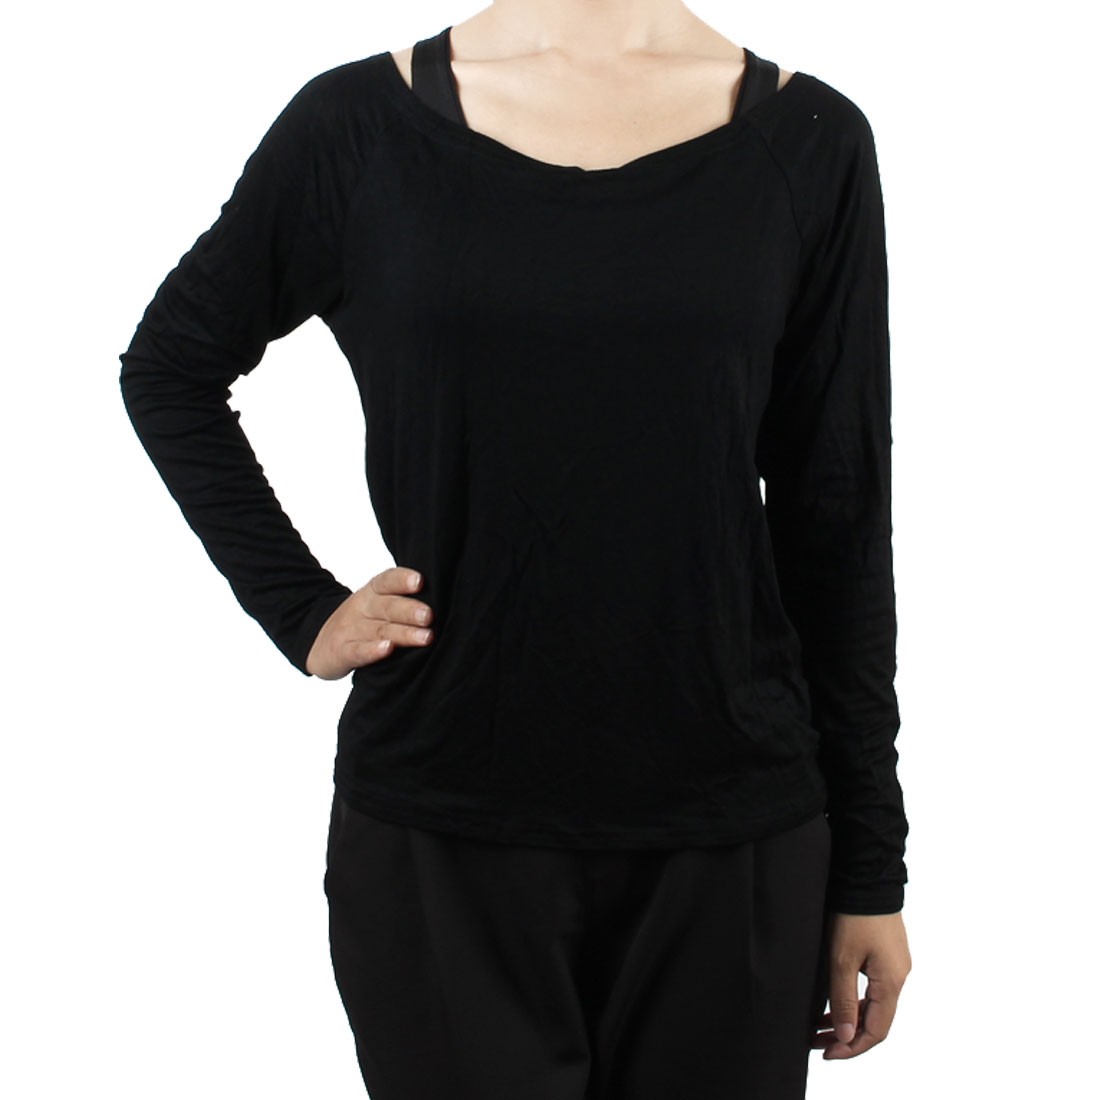 Woman Outdoor Exercse Polyester Casual Long Sleeve Blouse Top Sheer Shirt Black S (US 6)